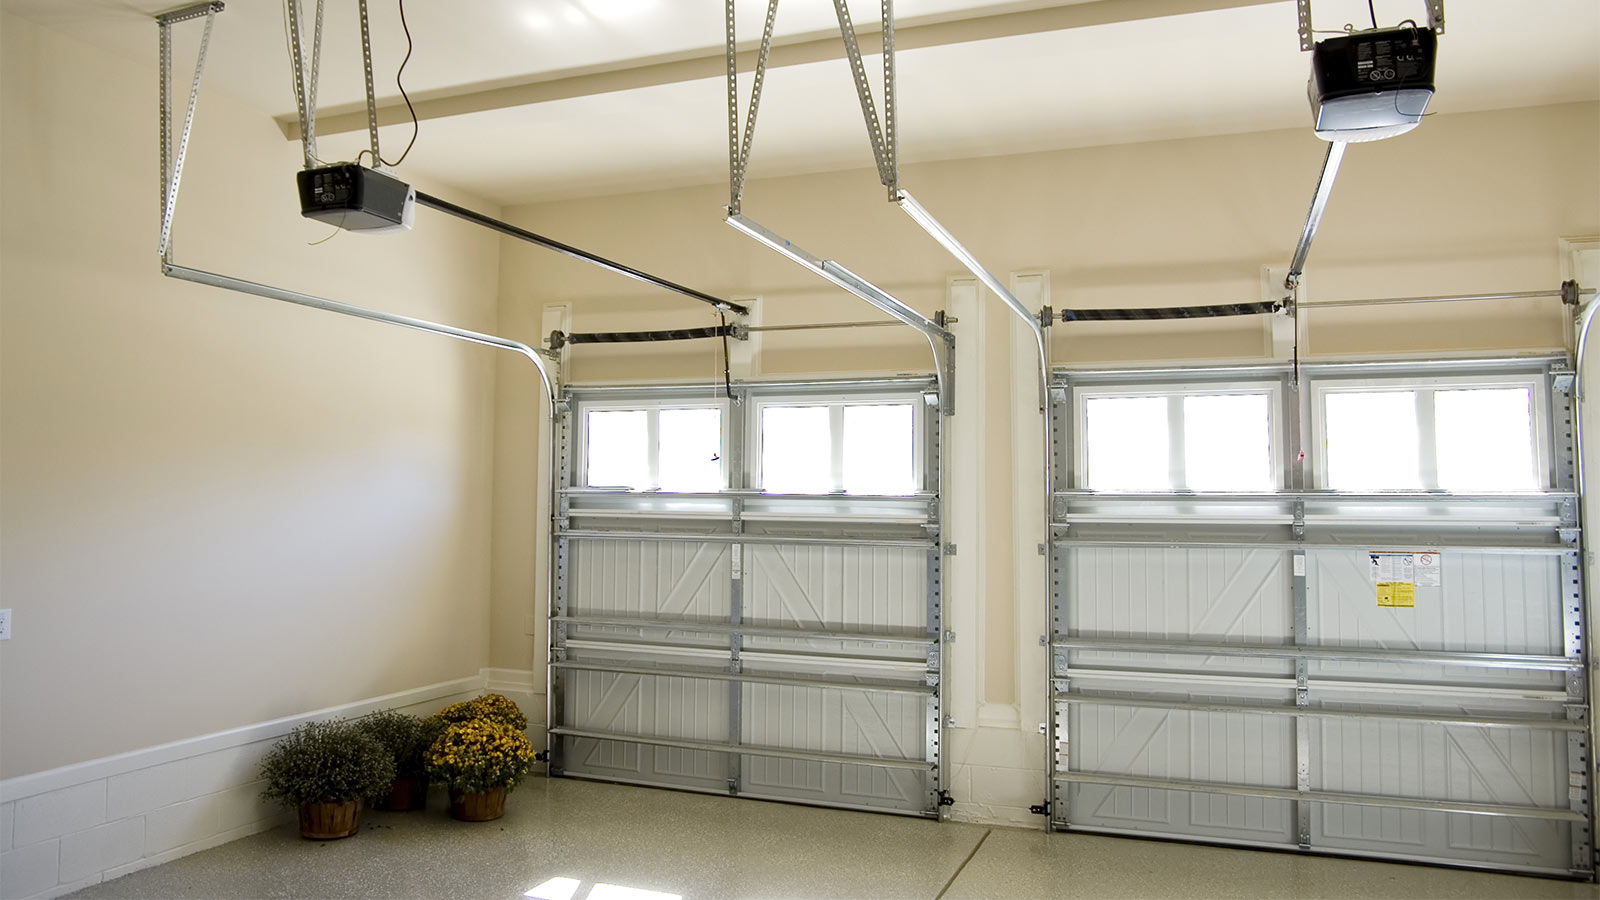 Sectional Garage Doors from Steel Security Doors Southend suppliers.